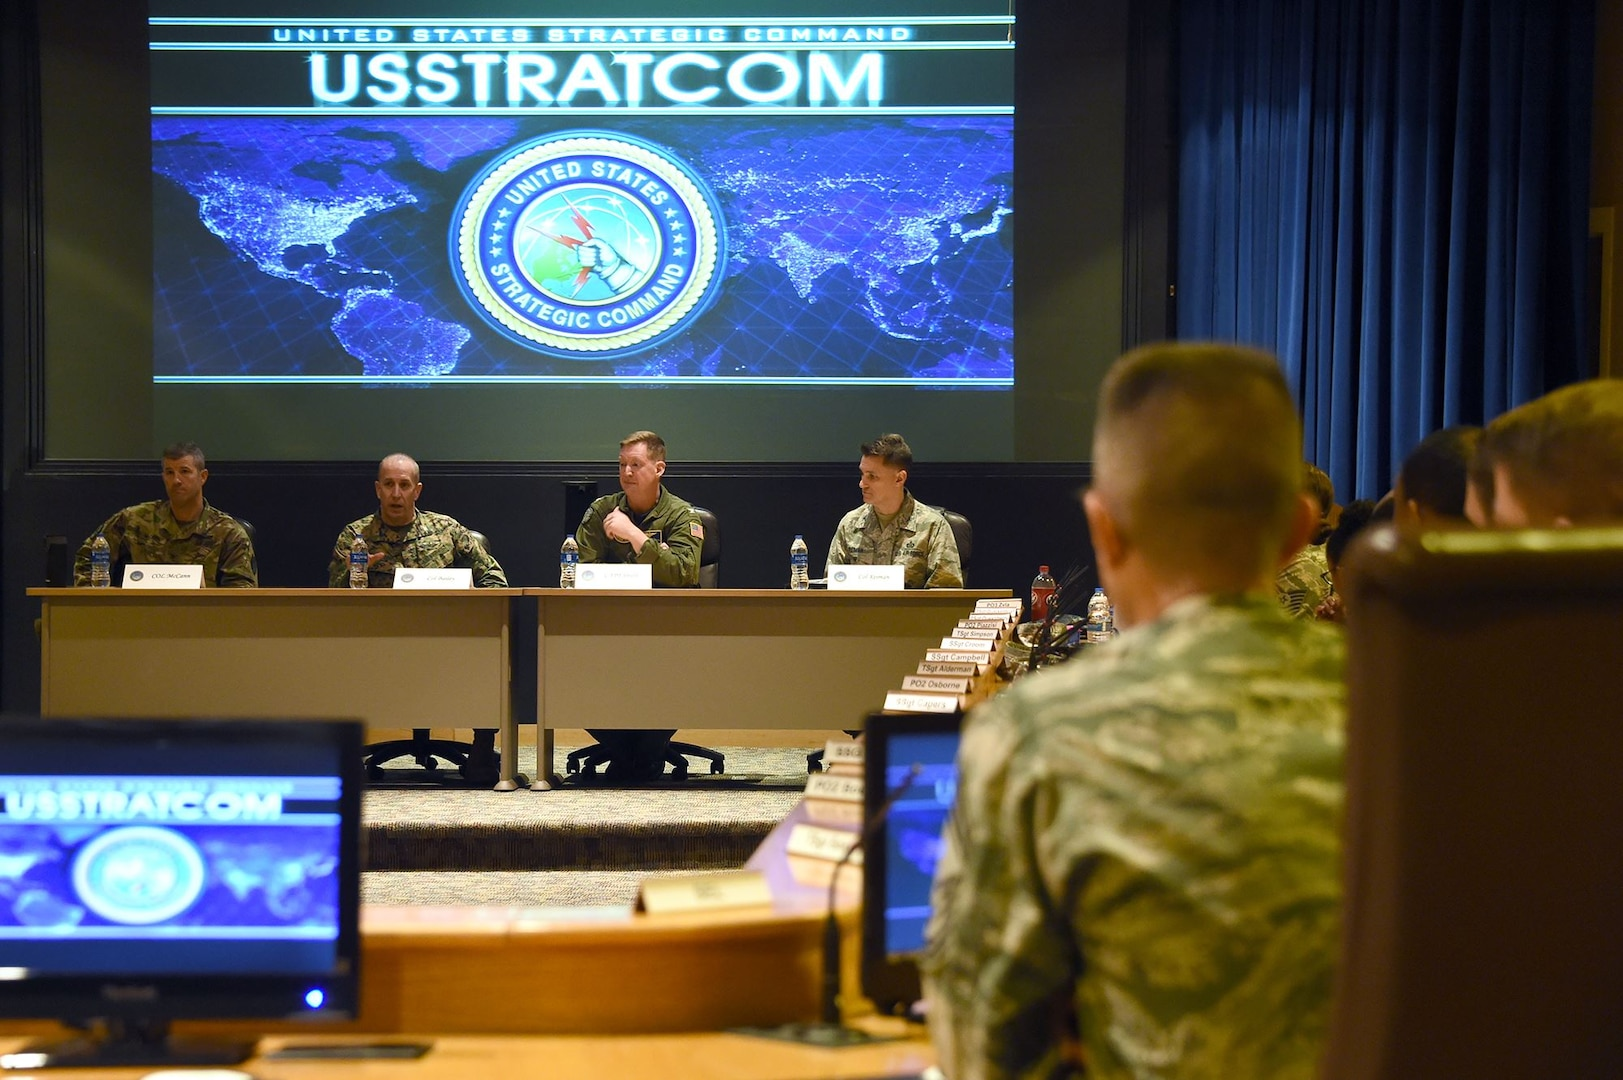 Left to right: U.S. Army Col. Kevin McCann, capability and resource analysis division chief in U.S. Strategic Command's (USSTRATCOM) Capability and Resource Integration directorate; U.S. Marine Corps Col. Branden Bailey, Joint Fires Element division chief in USSTRATCOM's Global Operations directorate; U.S. Navy Capt. Clinton Smith, Training division chief in USSTRATCOM's Global Operations directorate; and U.S. Air Force Col. Jeffrey Raiman, Strategic Targeting Intelligence division chief in USSTRATCOM's Plans and Policy (nuclear) directorate, participate in a graduated commander's panel during the inaugural non-commissioned officer (NCO) and petty officer (PO) joint professional development seminar at Offutt Air Force Base, Neb., Jan. 24, 2018. During the two-day course, NCOs and POs assigned to USSTRATCOM and the 55th Wing discussed leadership techniques with senior enlisted leaders and officers through a series of discussion panels and briefings. This pilot course was developed by USSTRATCOM's senior enlisted leaders to enhance the effectiveness of soldiers, sailors, airmen and Marines at the E-5 and E-6 level through joint professional military education.